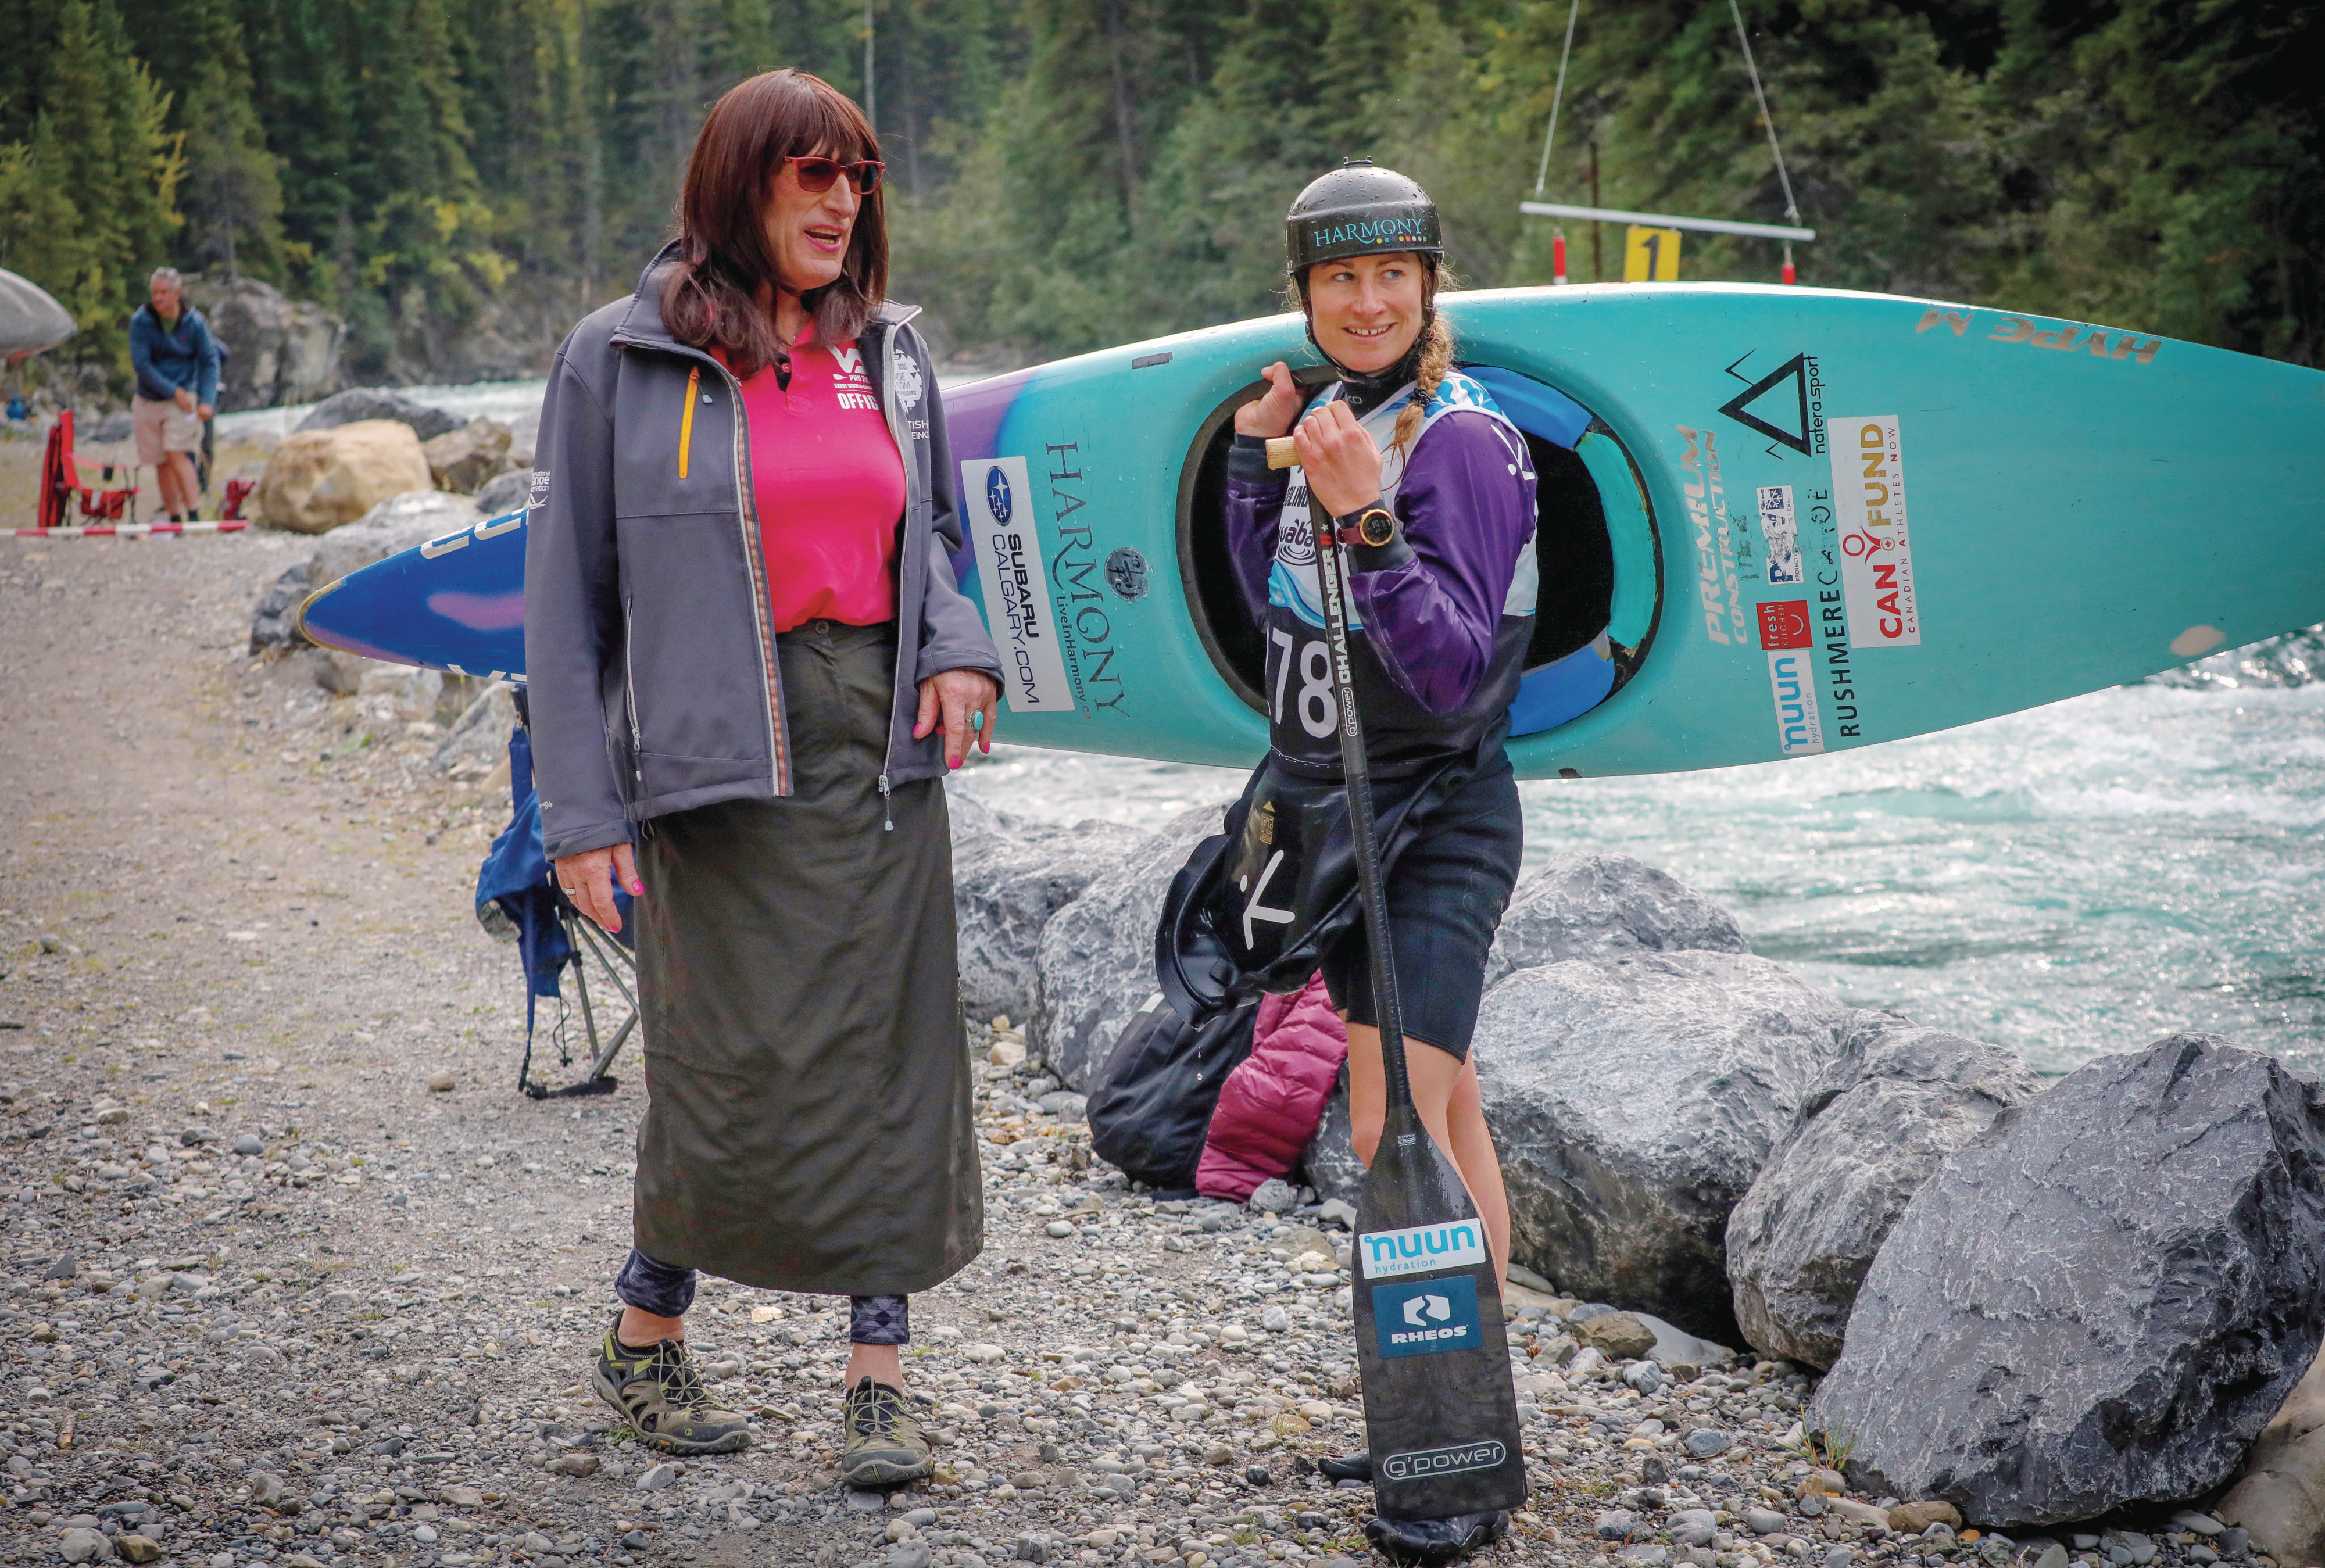 Kimberley Daniels and daughter Haley Daniels during the Alberta slalom canoe kayak championships in Kananaskis (Photograph by Leah Hennel)